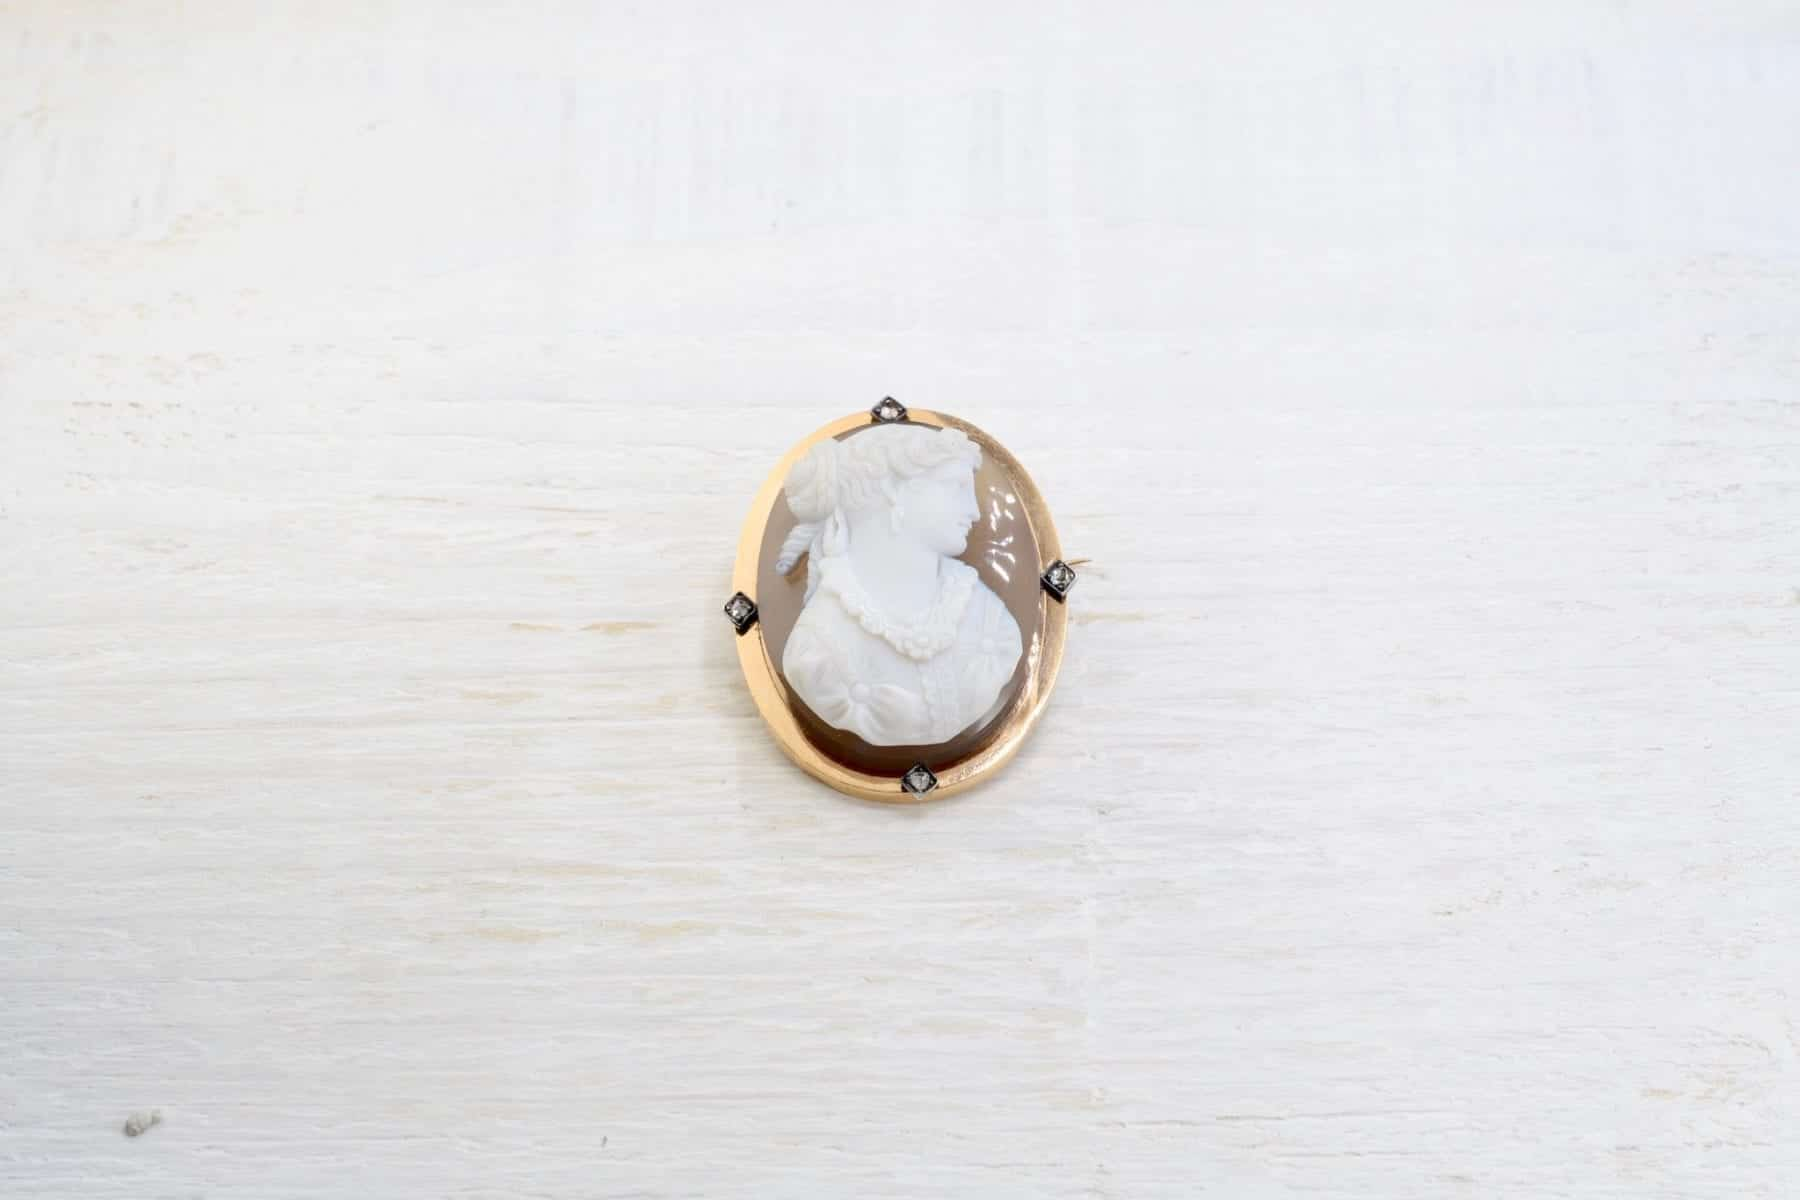 Agate brooch of 19th century